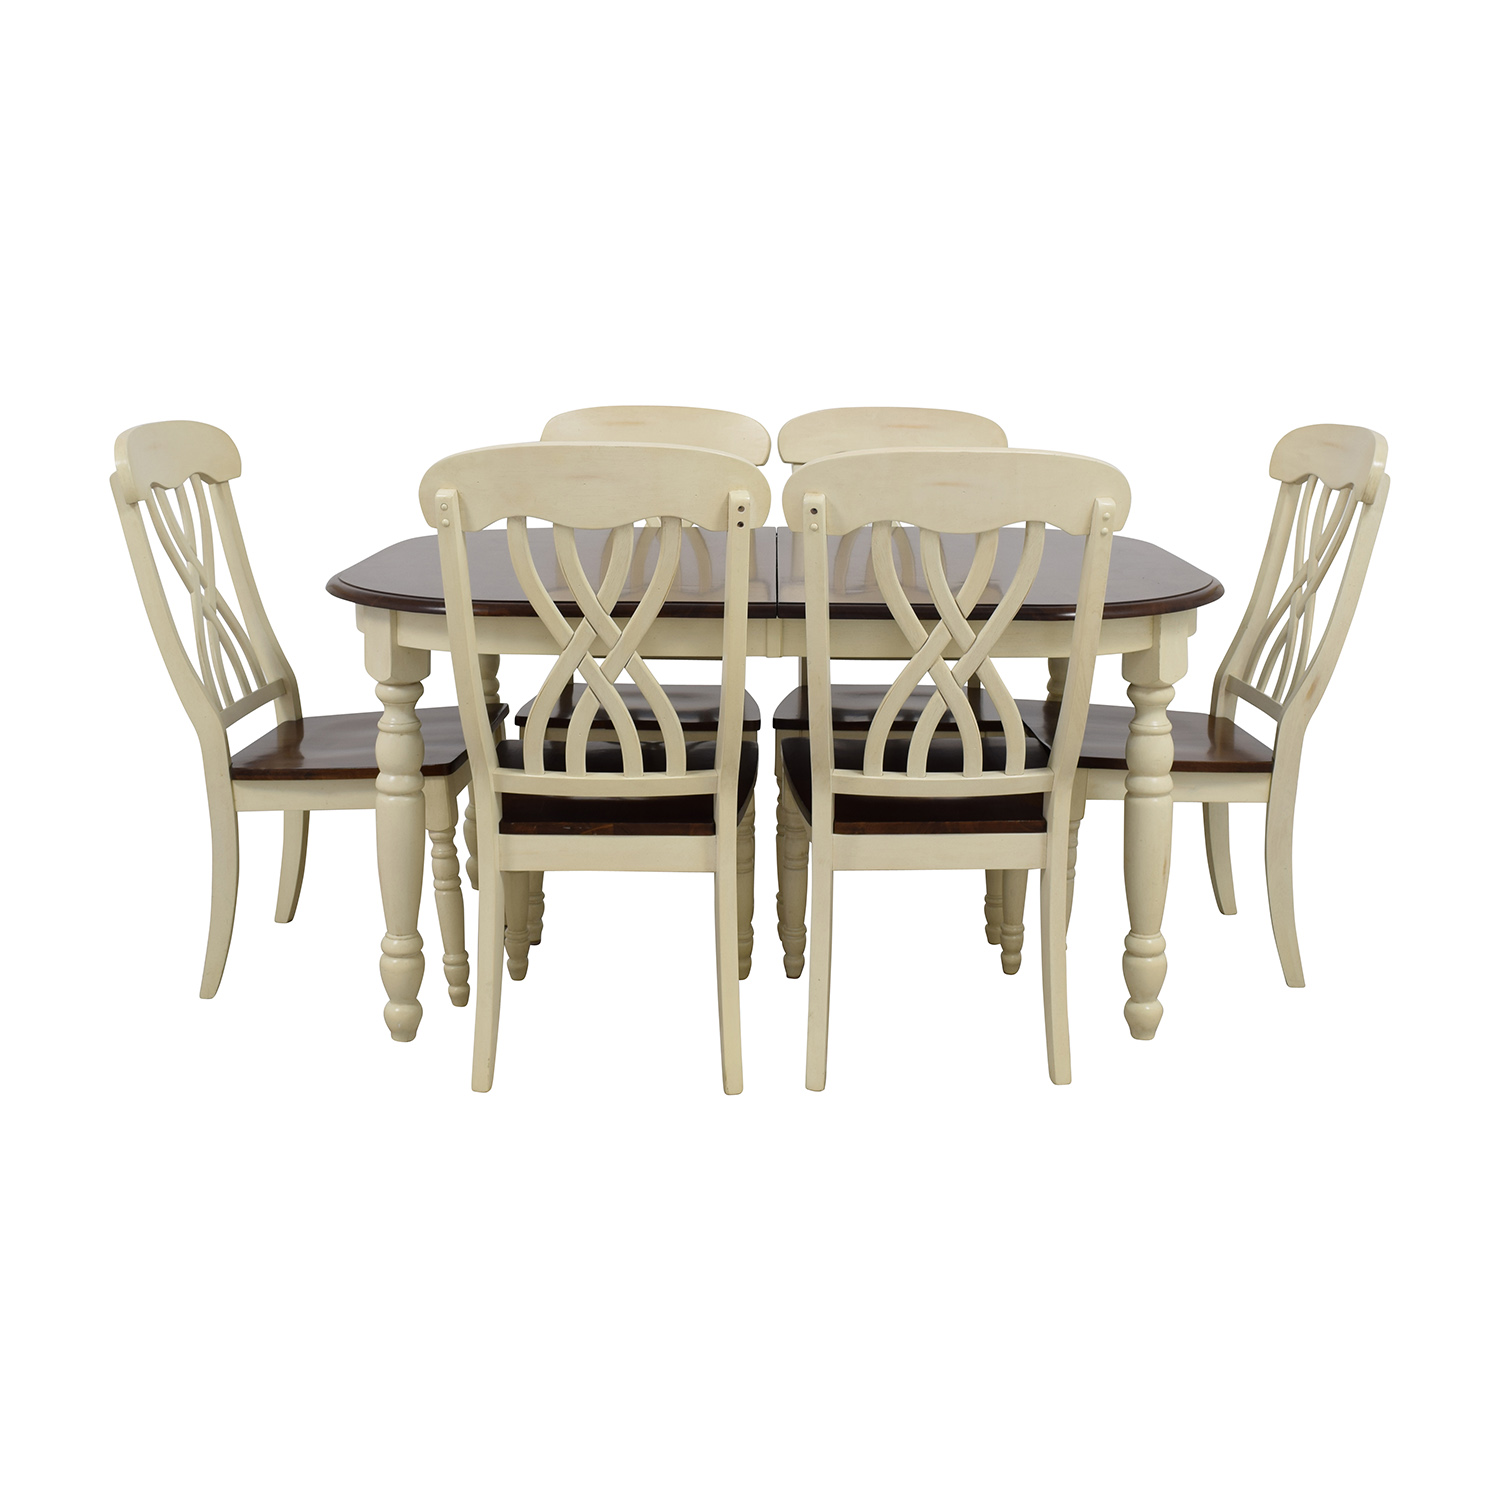 Extendable Wood Dining Table with Chairs dimensions